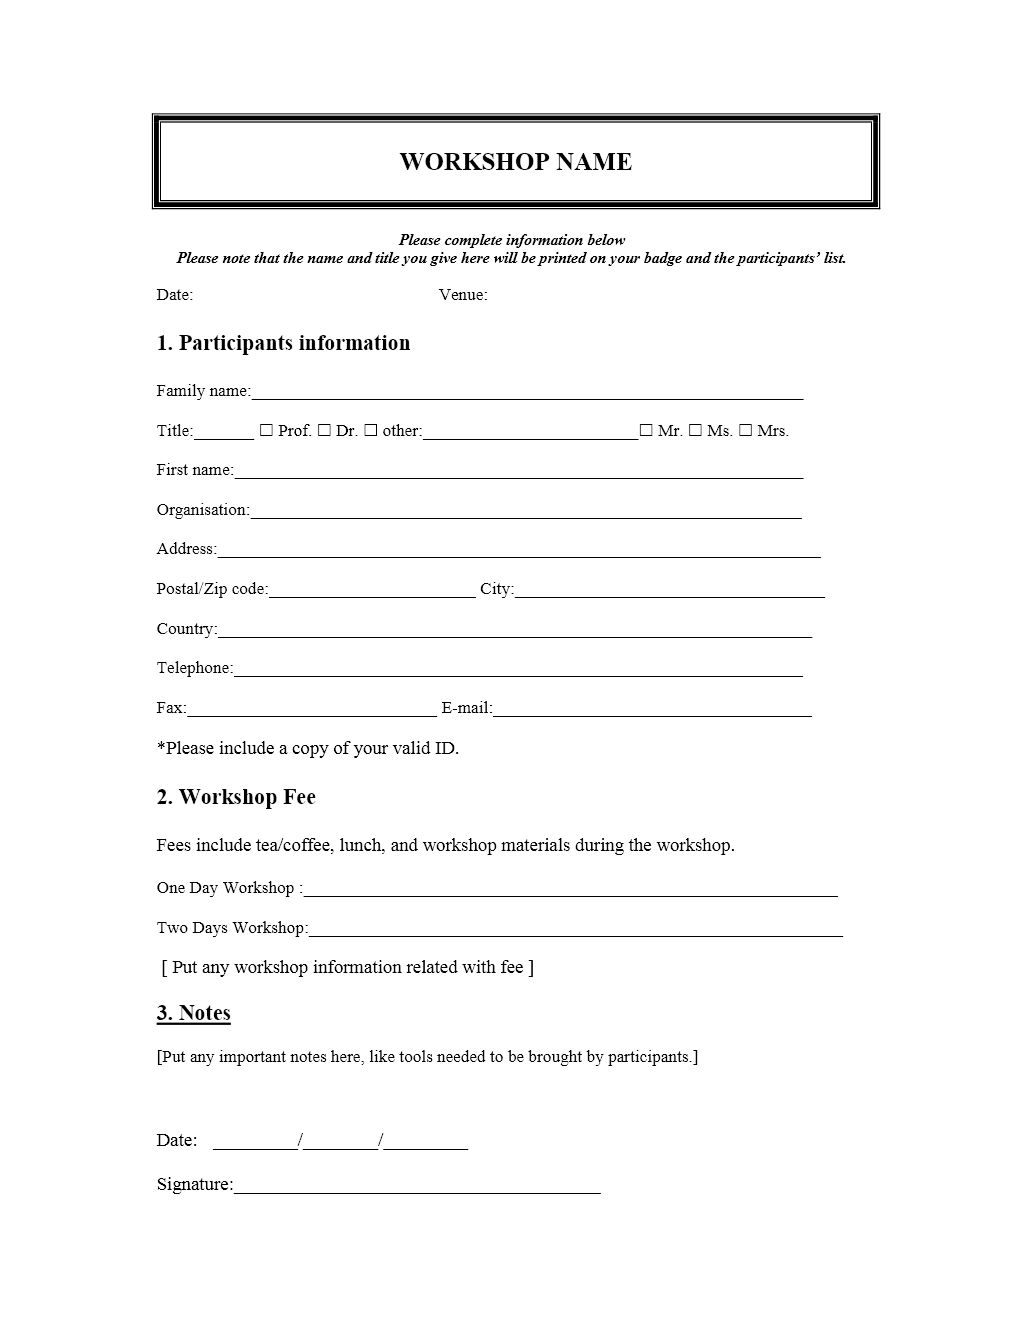 sign up form template word   Gecce.tackletarts.co